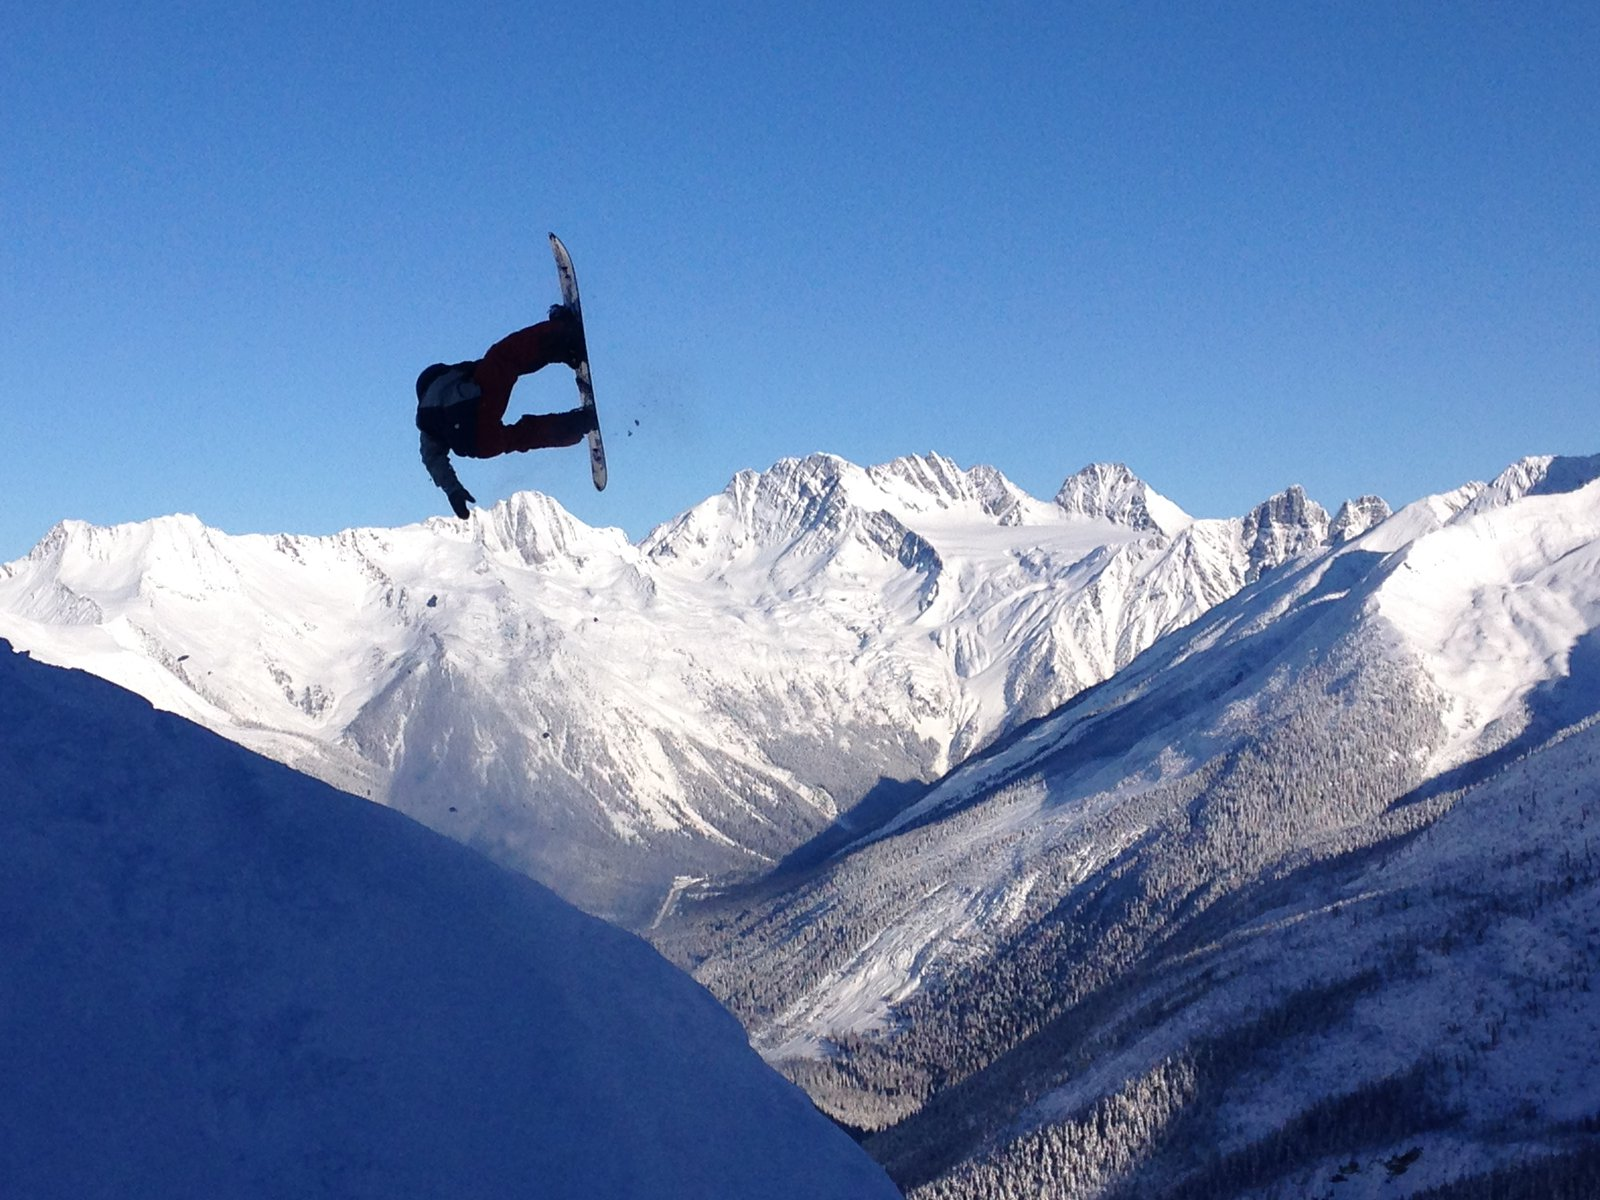 Airing over Mt. Rogers